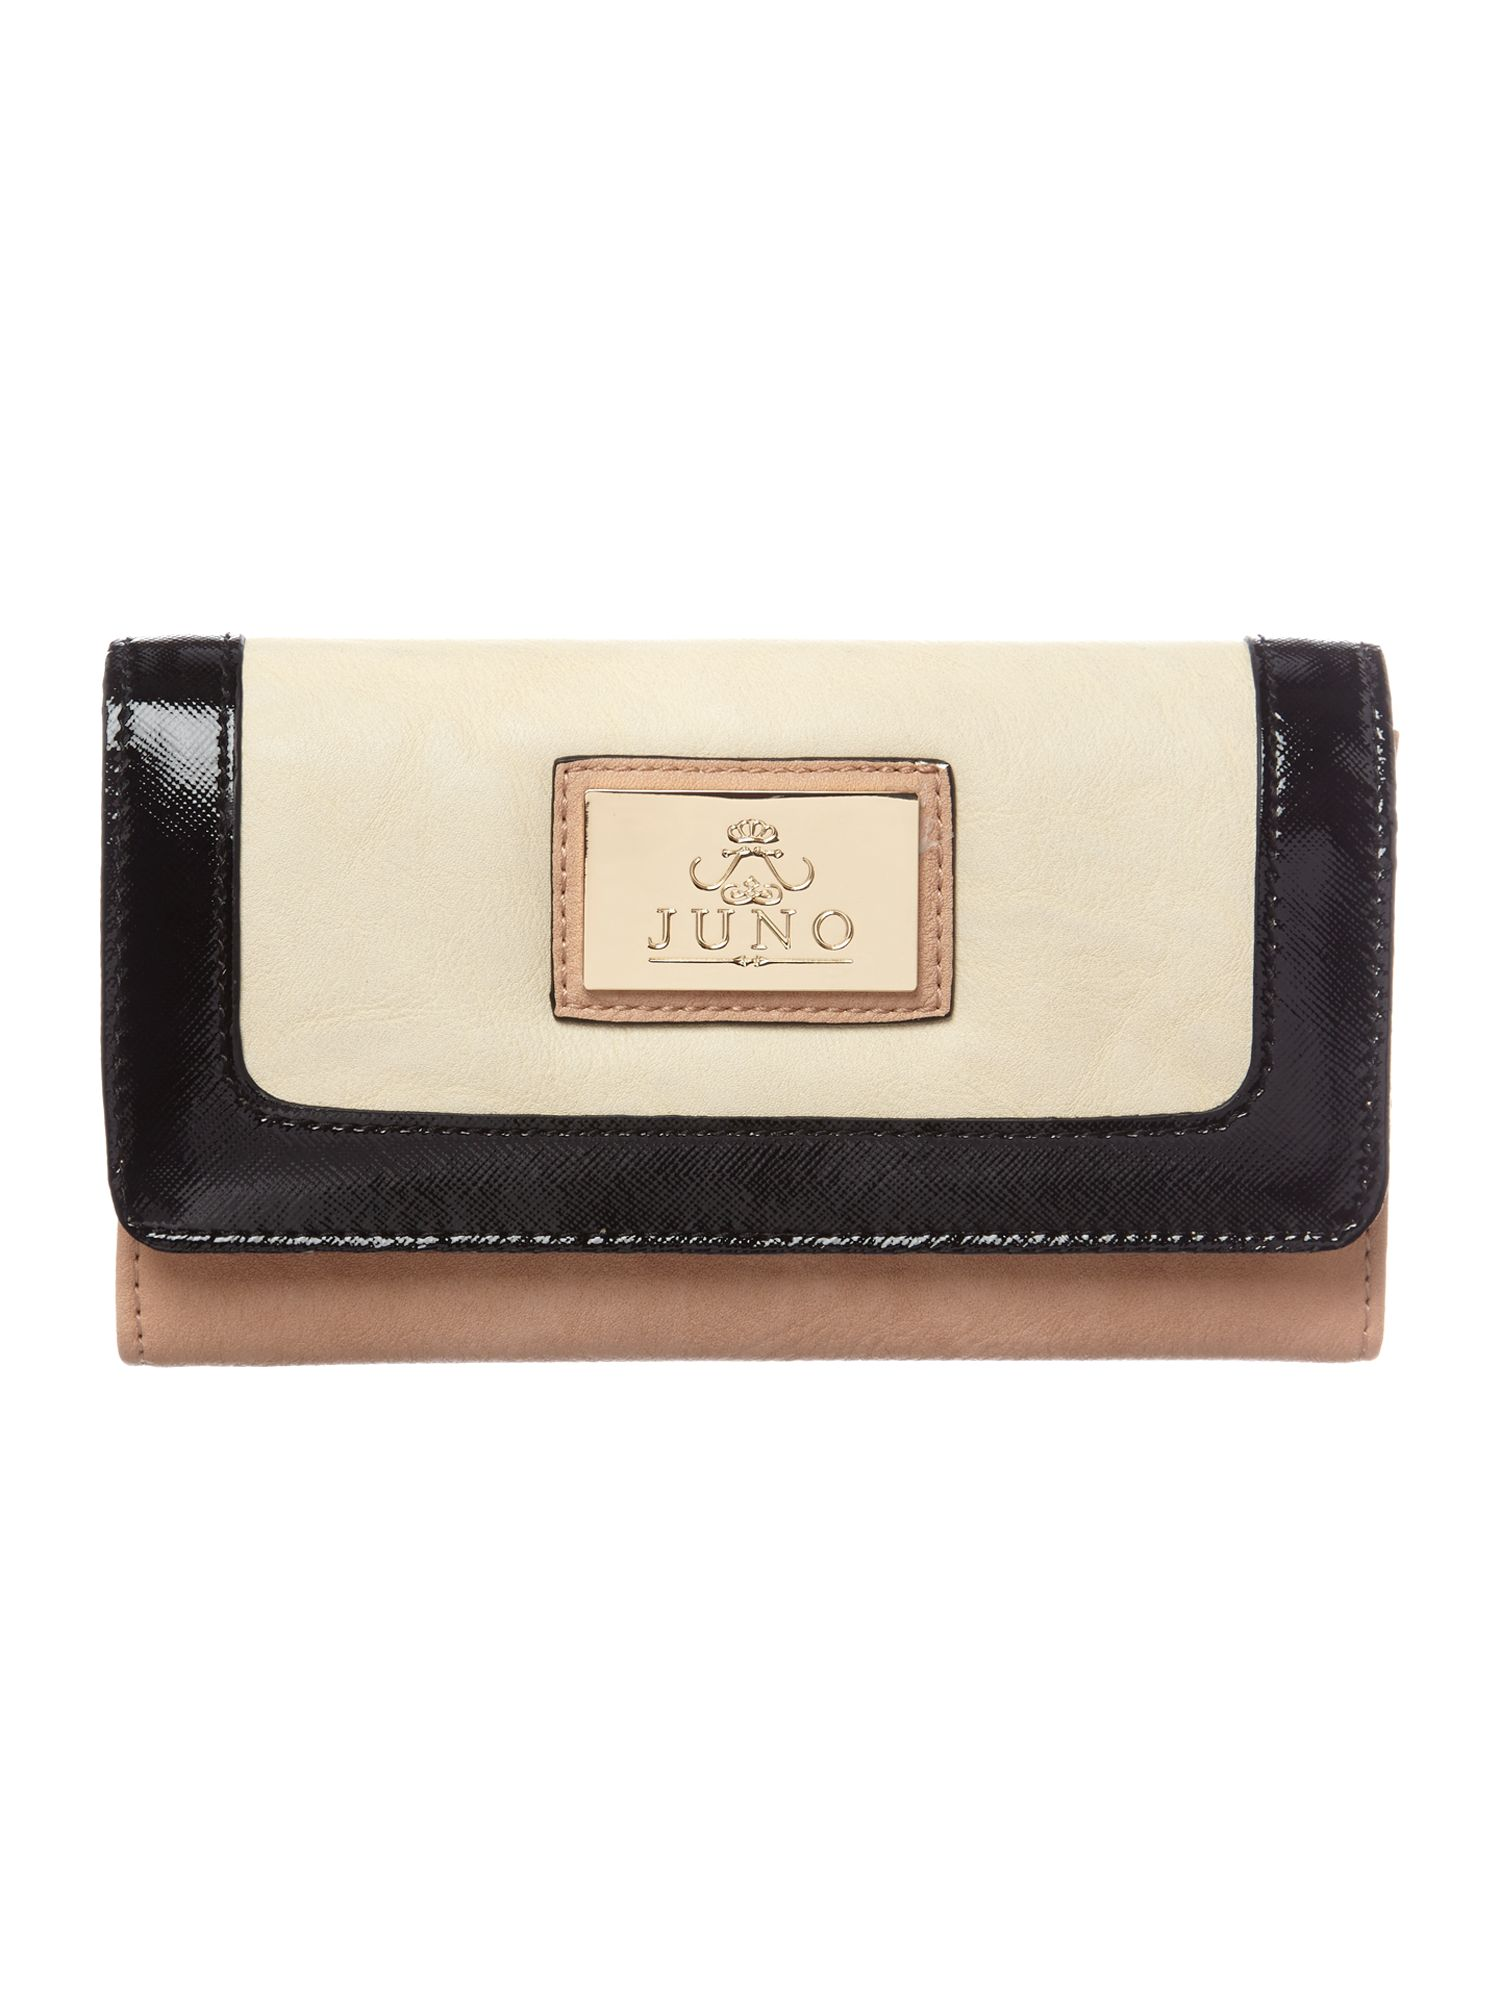 Black and nude flapover purse